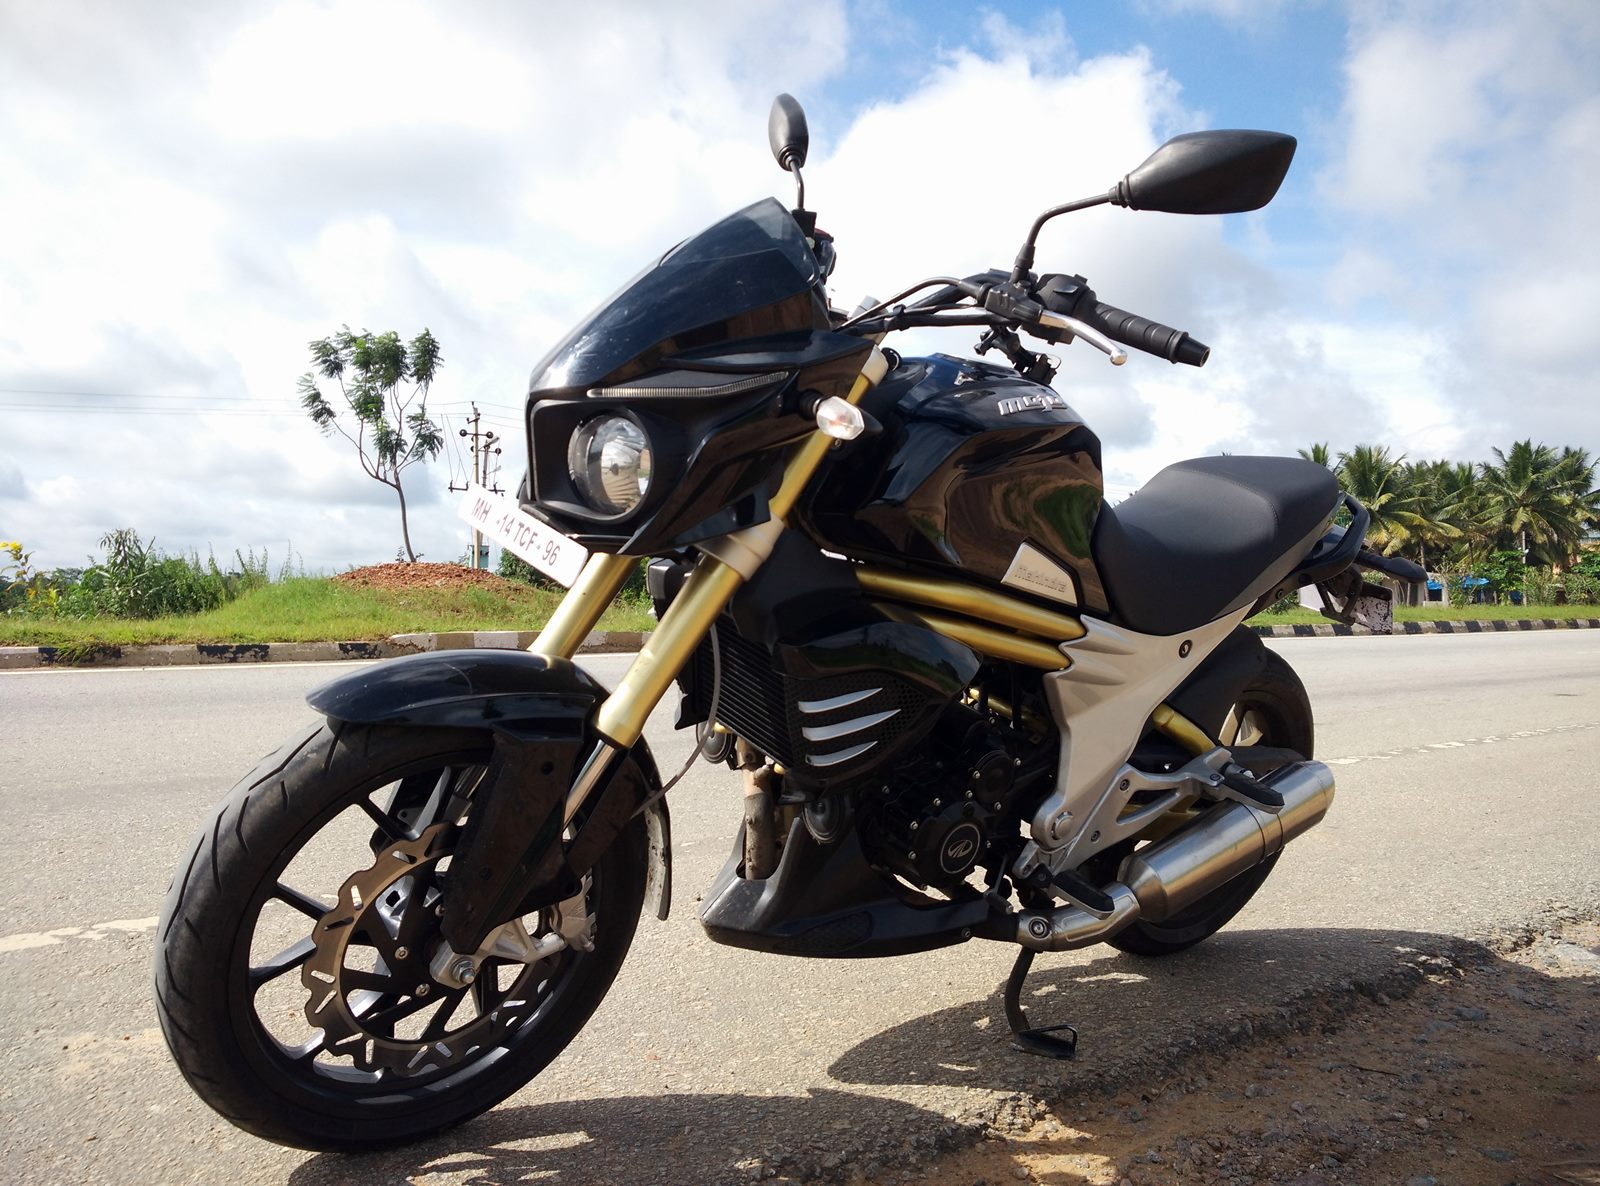 Mahindra Mojo first ride report